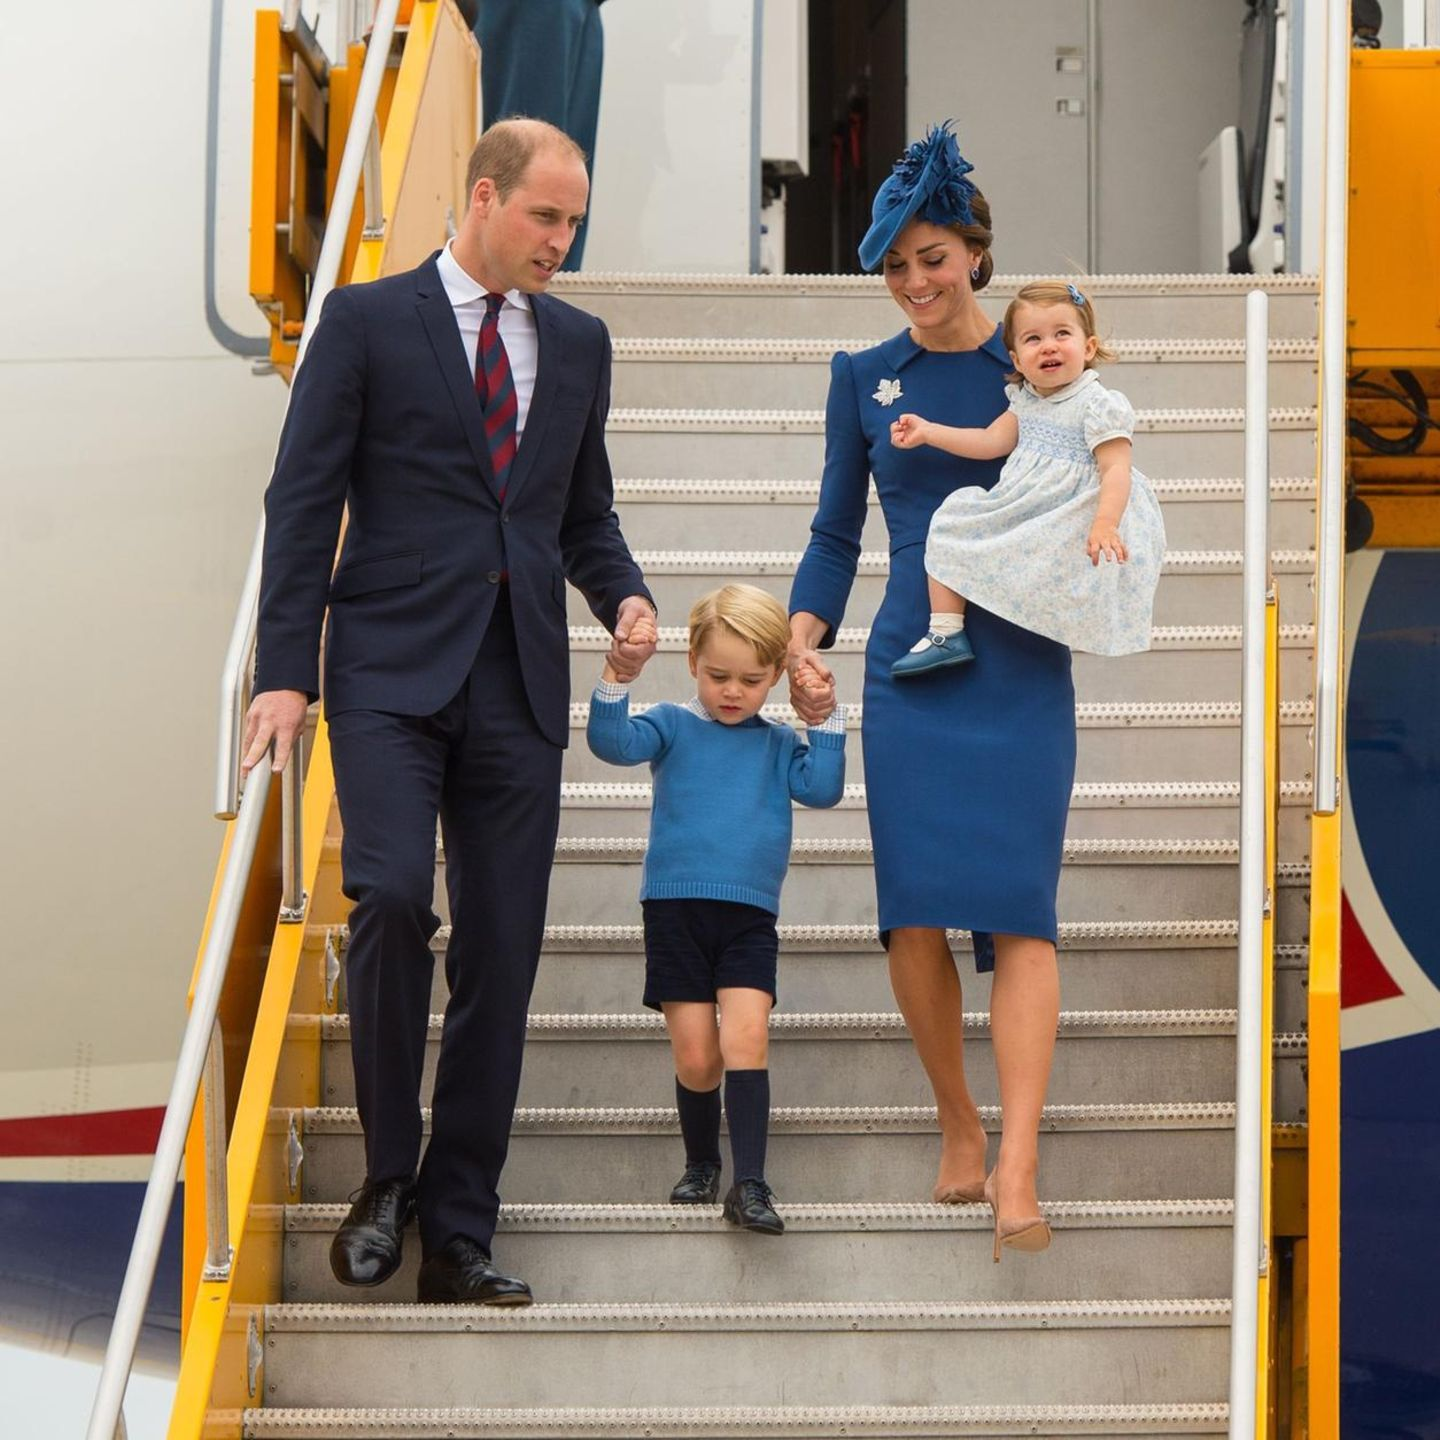 Die Cambridge-Familie (v.l.n.r.): Prinz William, Prinz George, Herzogin Catherine und Prinzessin Charlotte